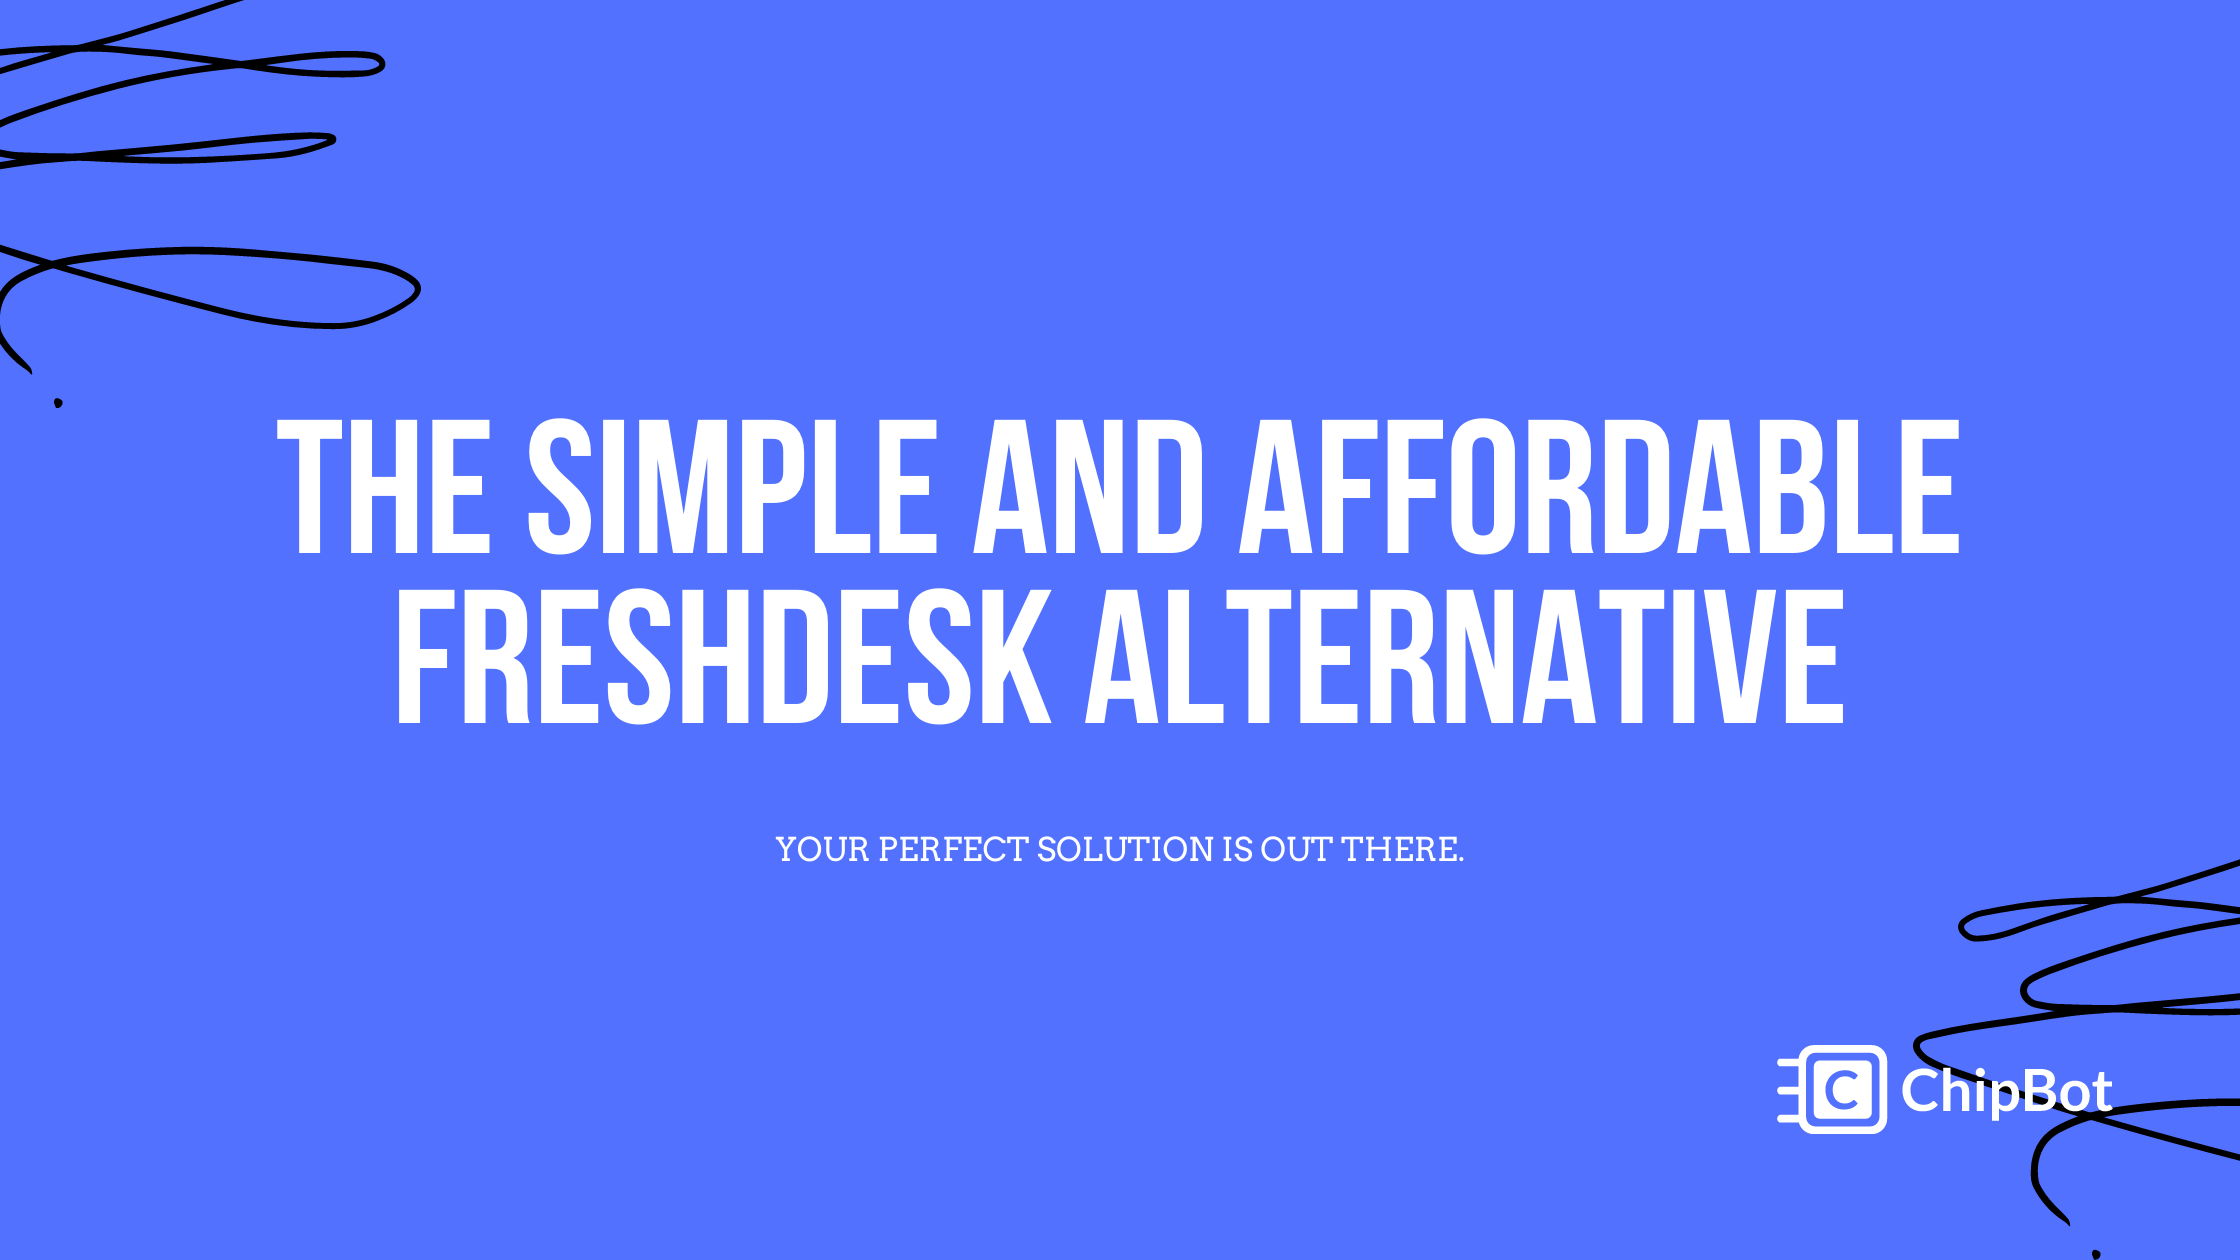 The Simple and Affordable Freshdesk Alternative